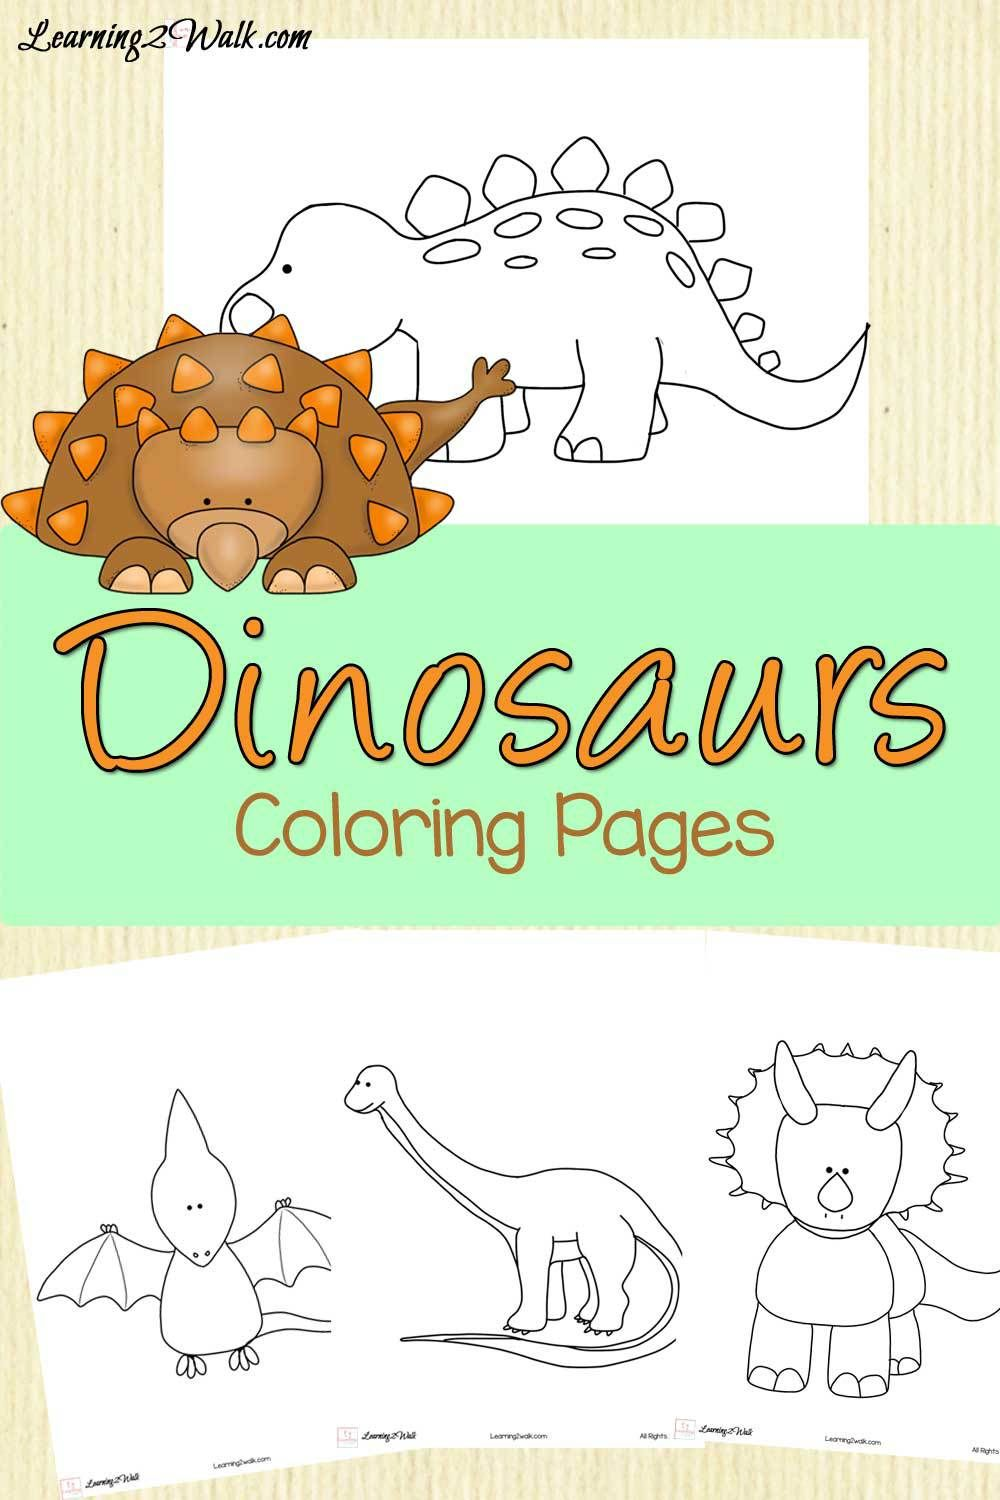 Dinosaurs Coloring Pages- Learning 2 Walk | Free, Preschool dinosaur ...